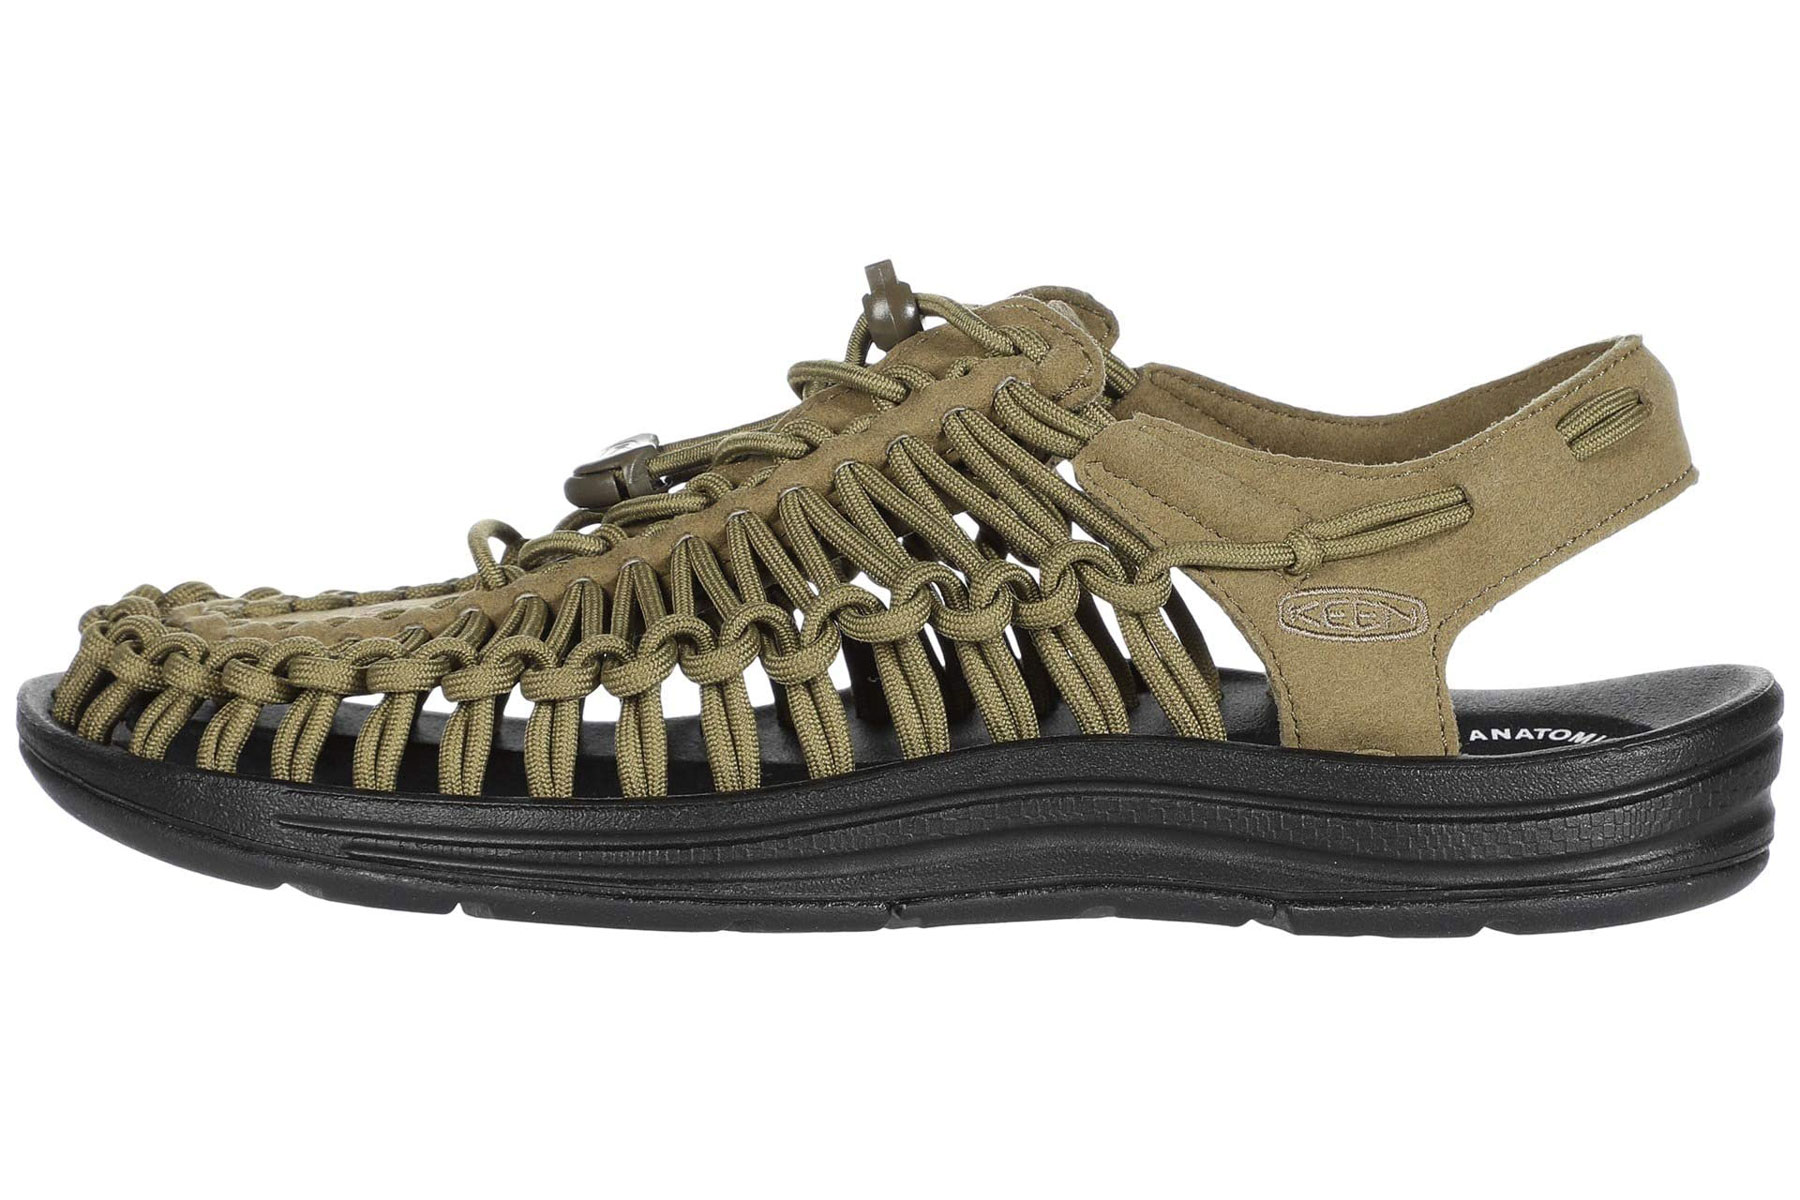 Army green water sandals